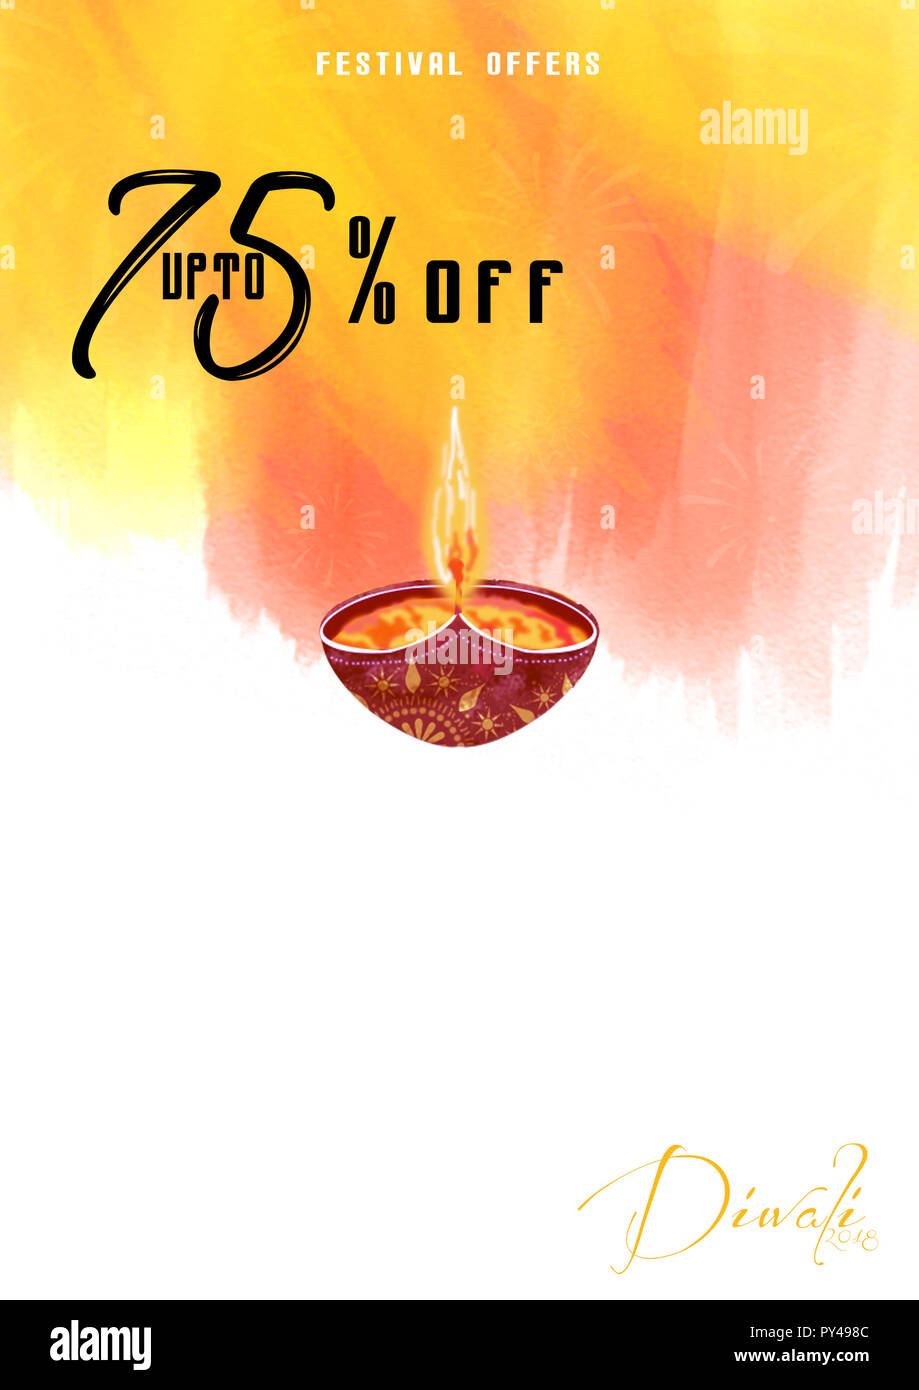 diwali festival offer poster design template with creative lamps and 75 offers